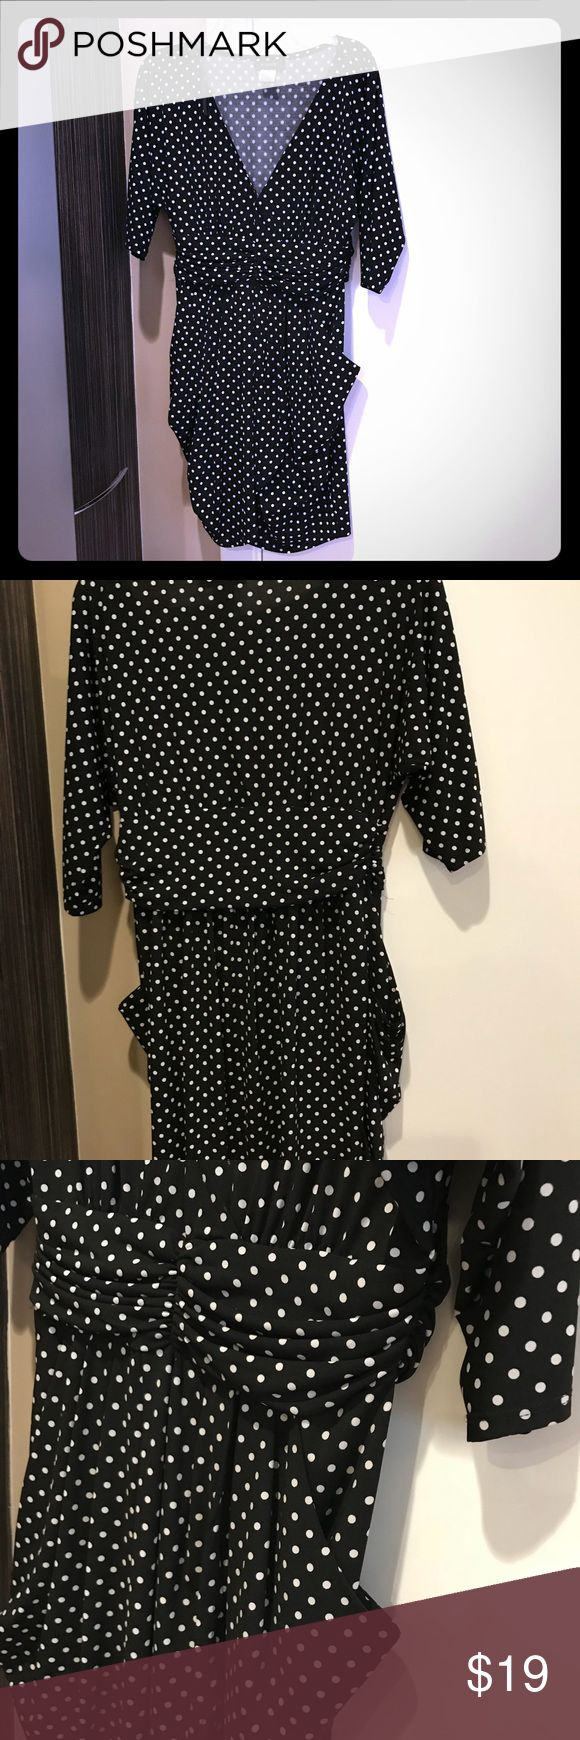 "Cute black & white tunic dress with great details This is such a cute mini dress or tunic! Front pockets and side shirring provide a slimming profile. V neck gives a hint of seduction. 19"" armpit to armpit and 34"" back neck to hem. B. Smart Dresses Mini"